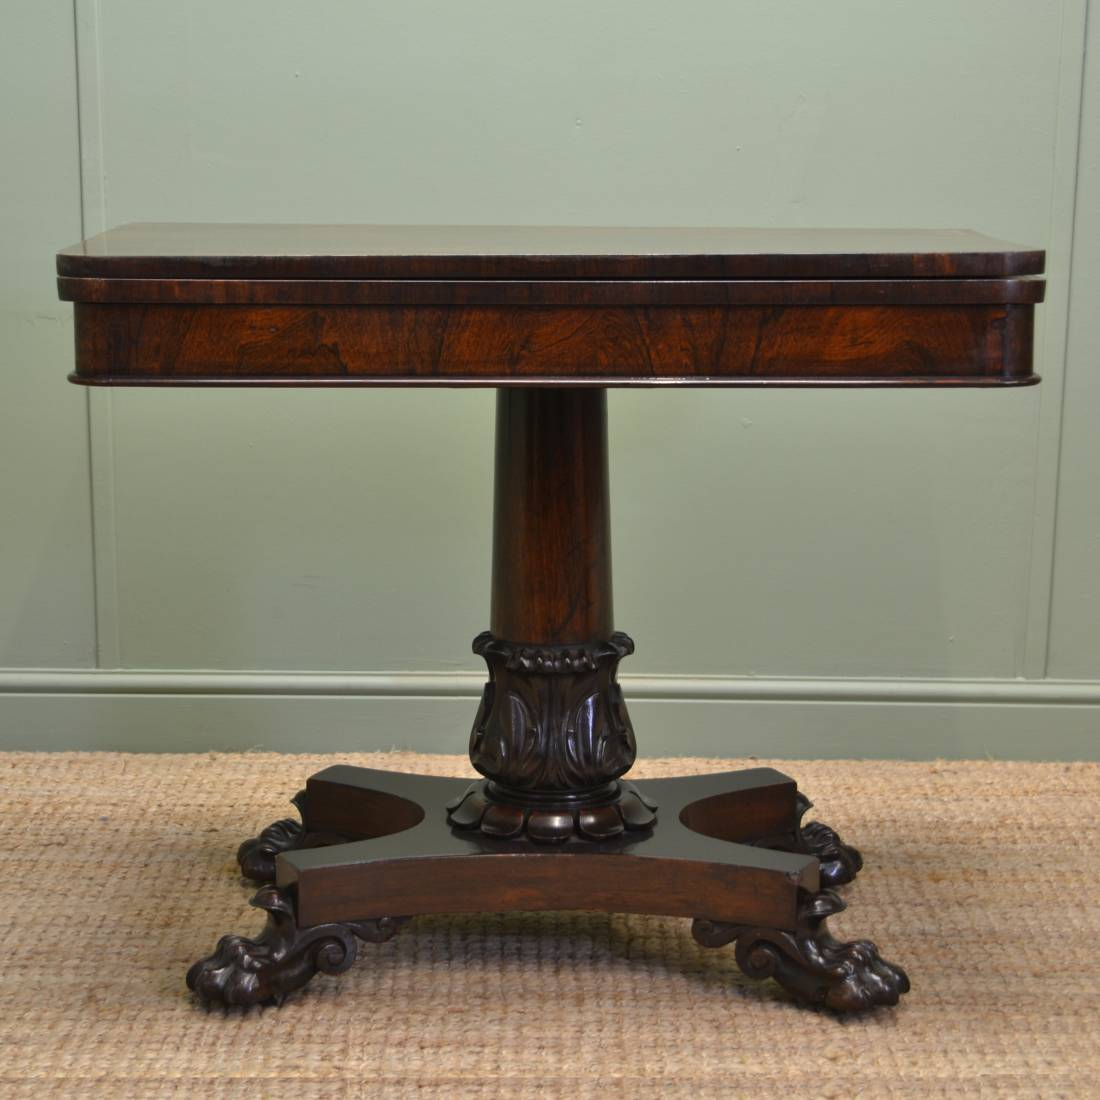 Rosewood Regency Antique Games / Console Table With Exquisite Lion Paw Feet